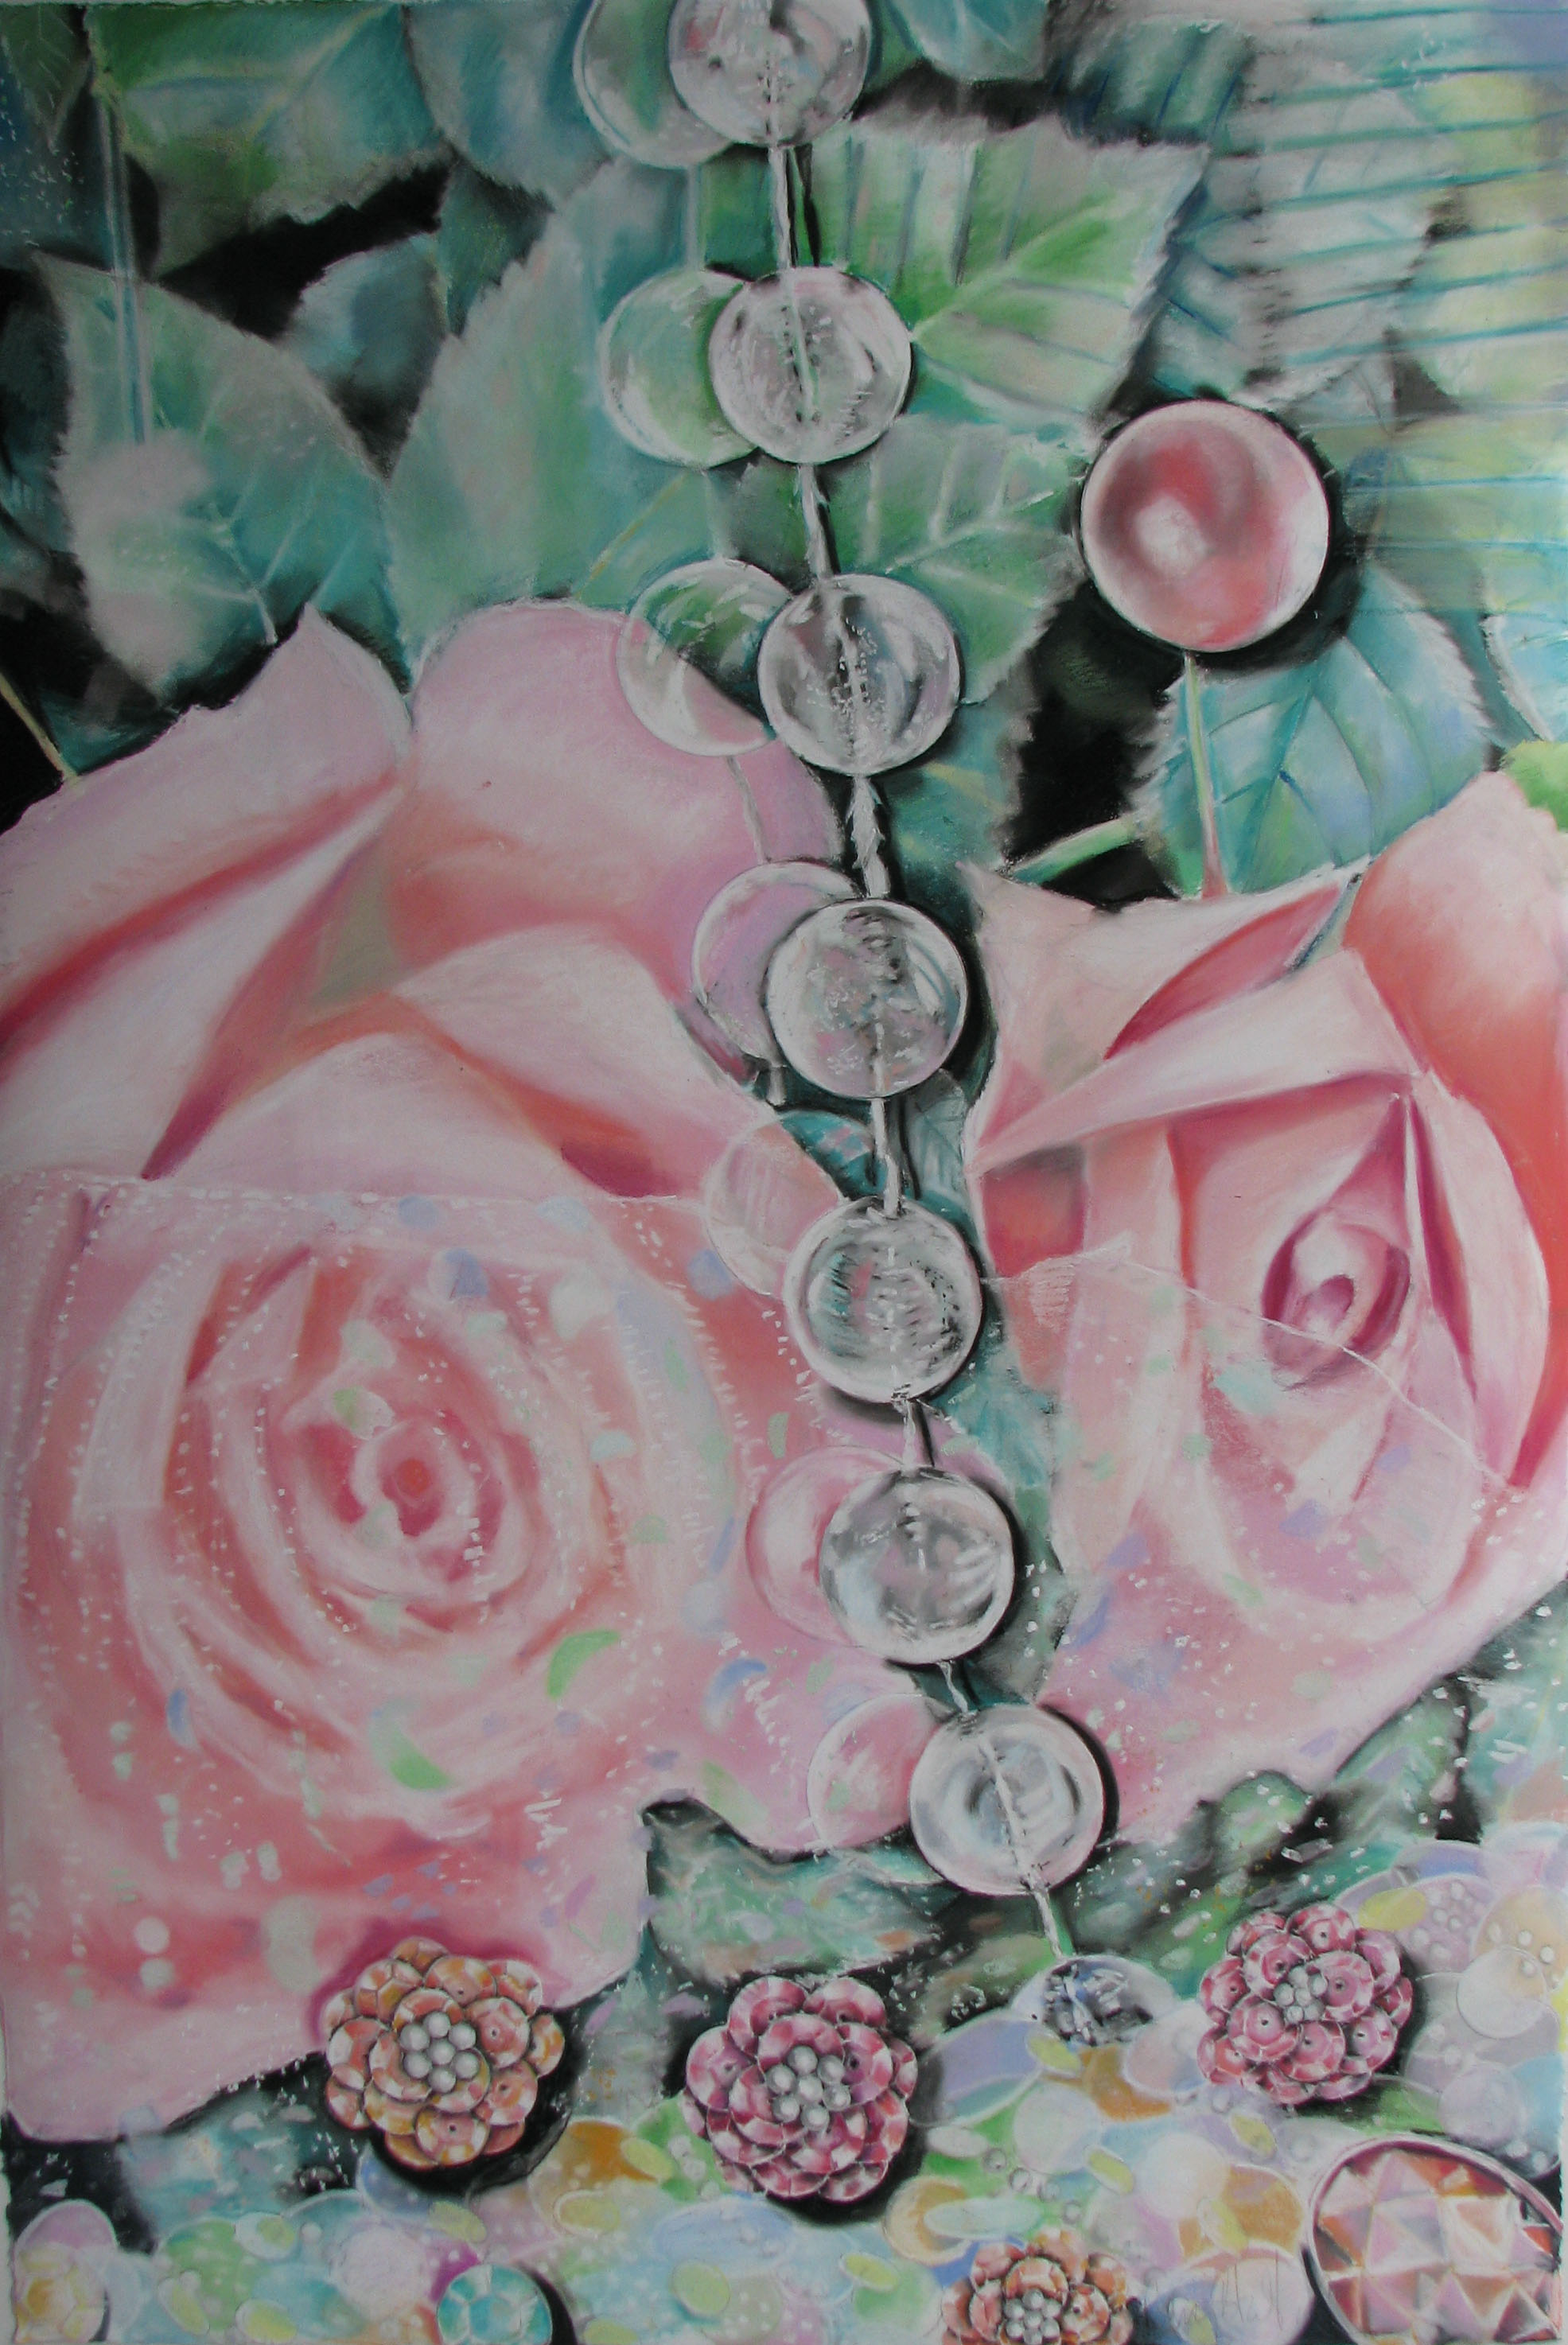 Transformation of the Rose   39 x 27, pastel on paper